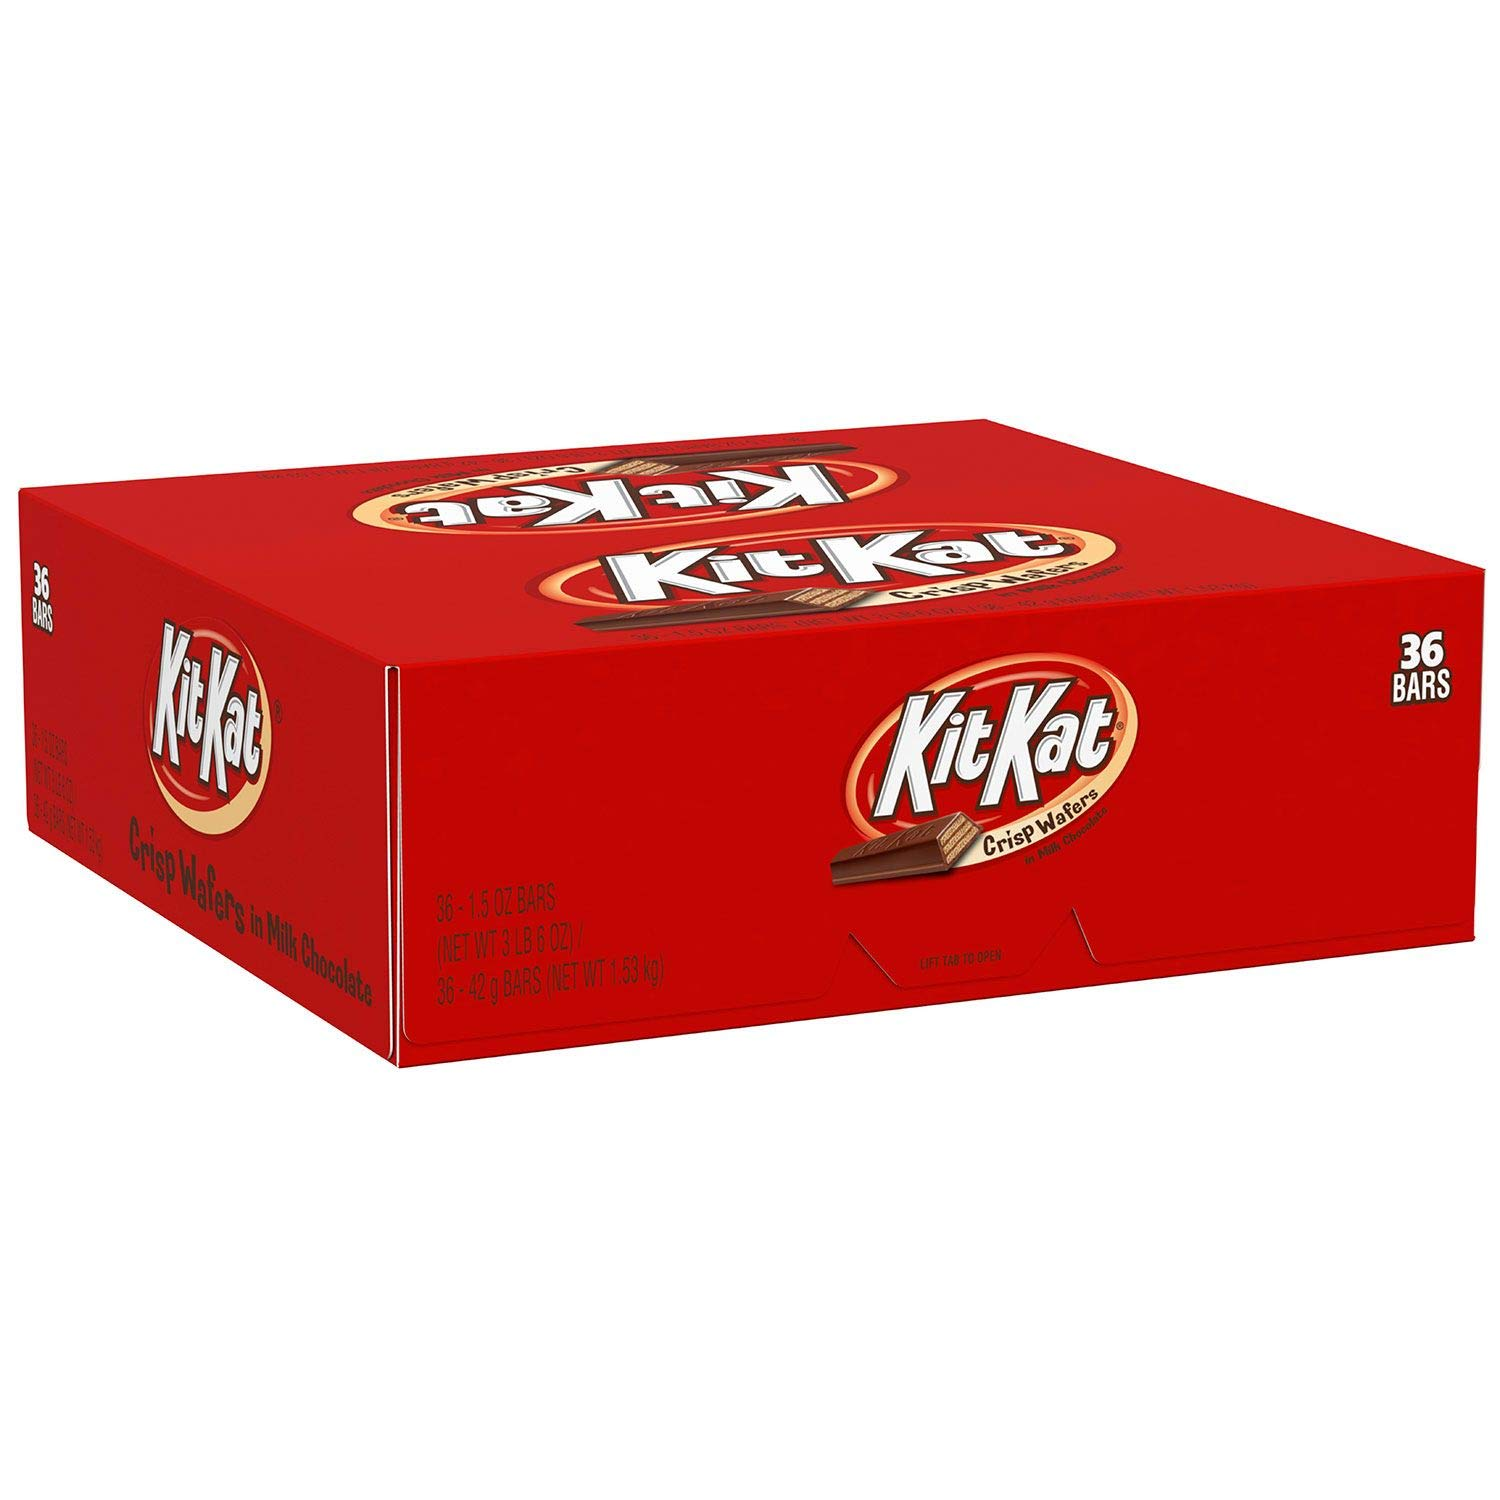 KIT KAT Bar (1.5-OZ Bars, Pack of 36)